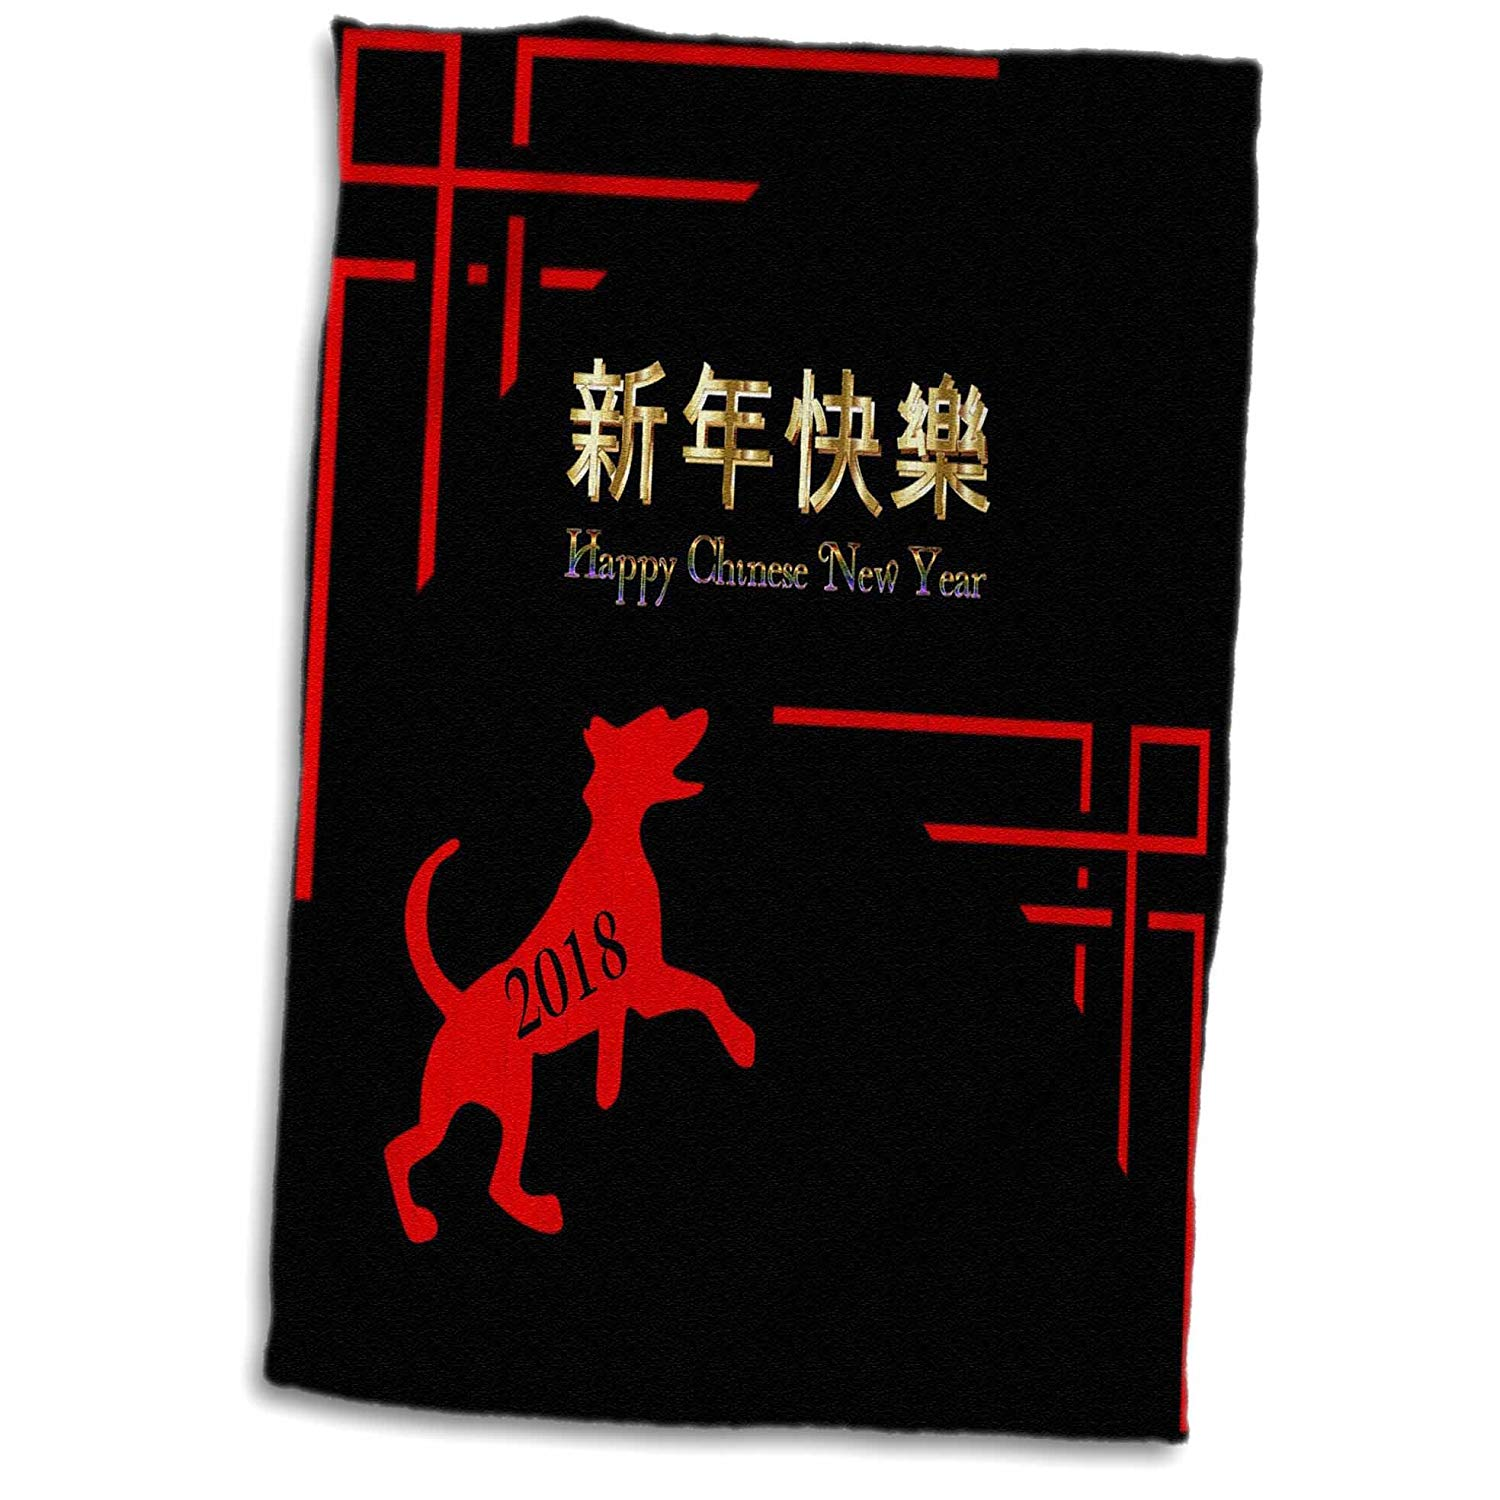 3dRose Chinese New Year - Image of Chinese Writing With Red Dog and Asian Scrolly 2018 - 15x22 Hand Towel (twl_262601_1)